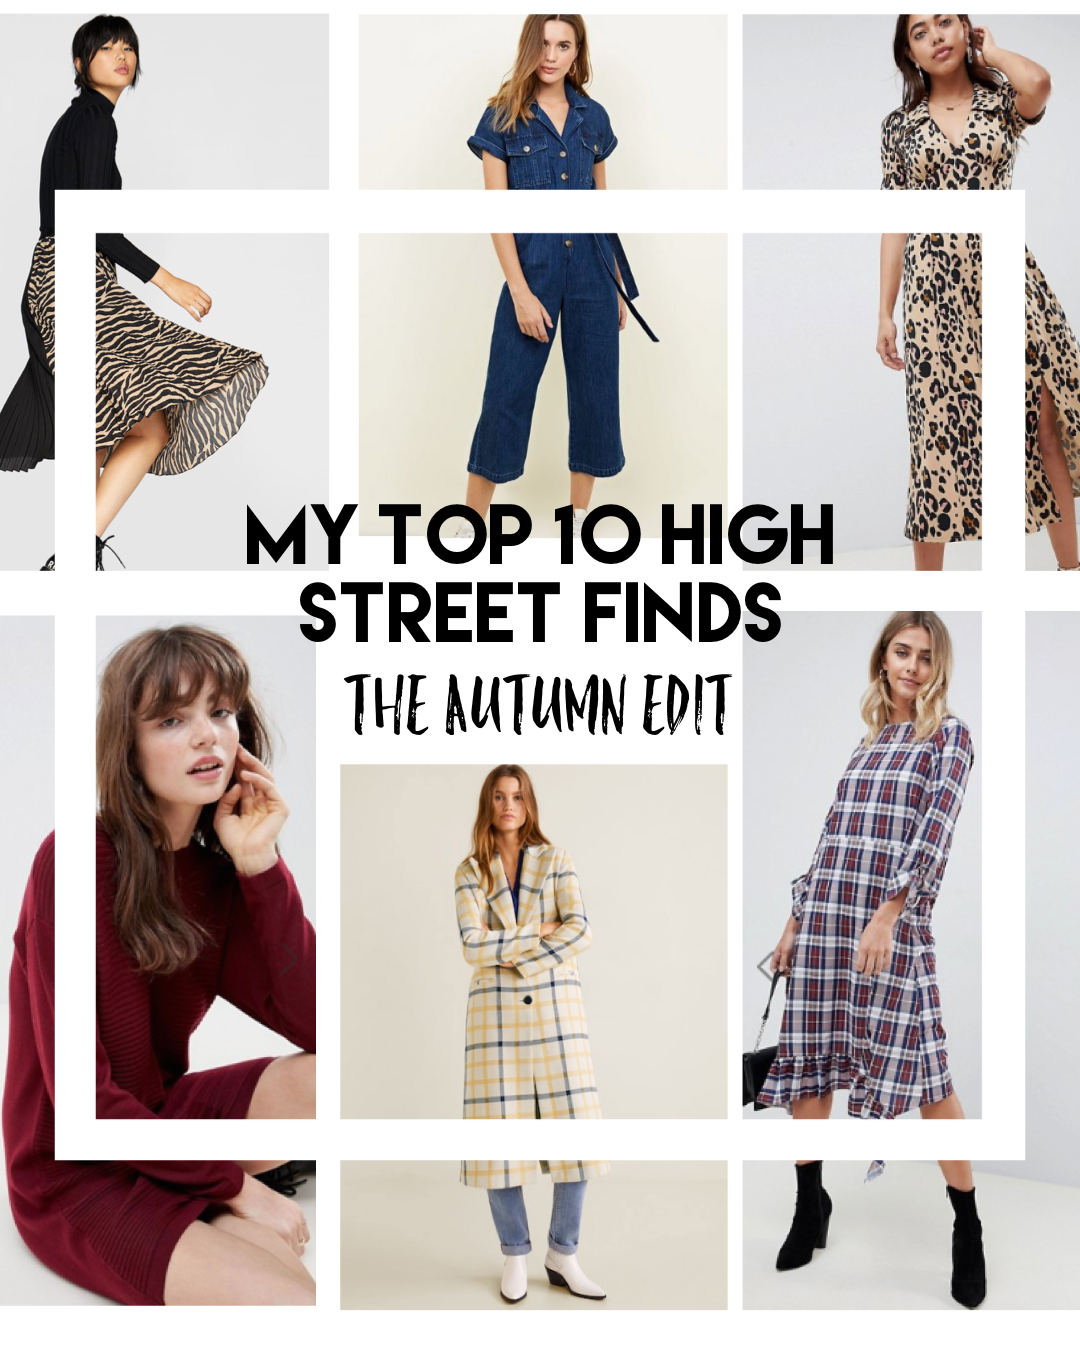 My Top High Street Finds #3 - The Autumn Edit // Lauren Rose Style // Fashion Blogger London Wishlist